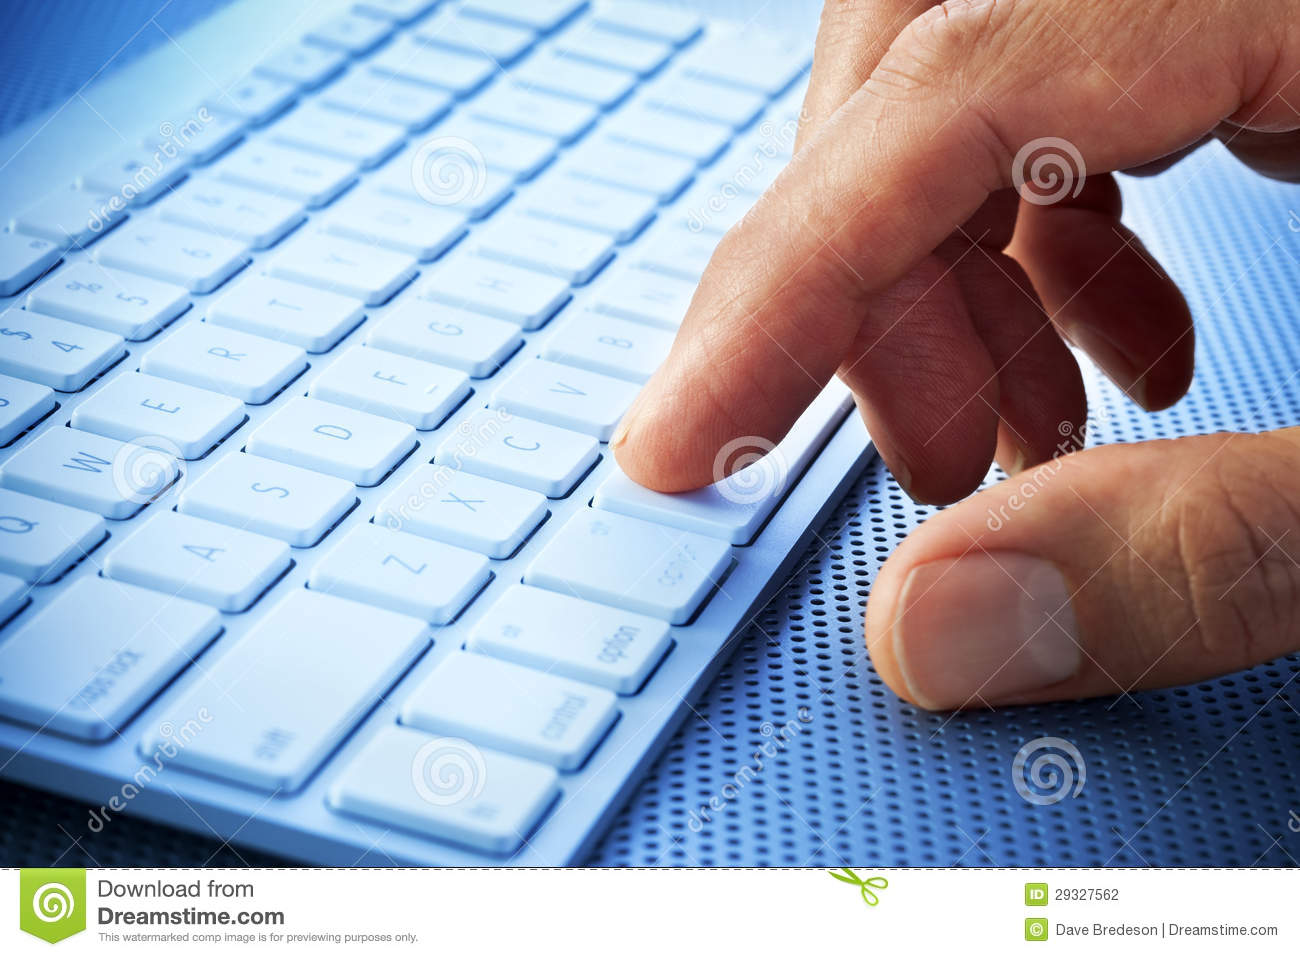 Computer Keyboard Hand Finger Stock Photography - Image: 29327562